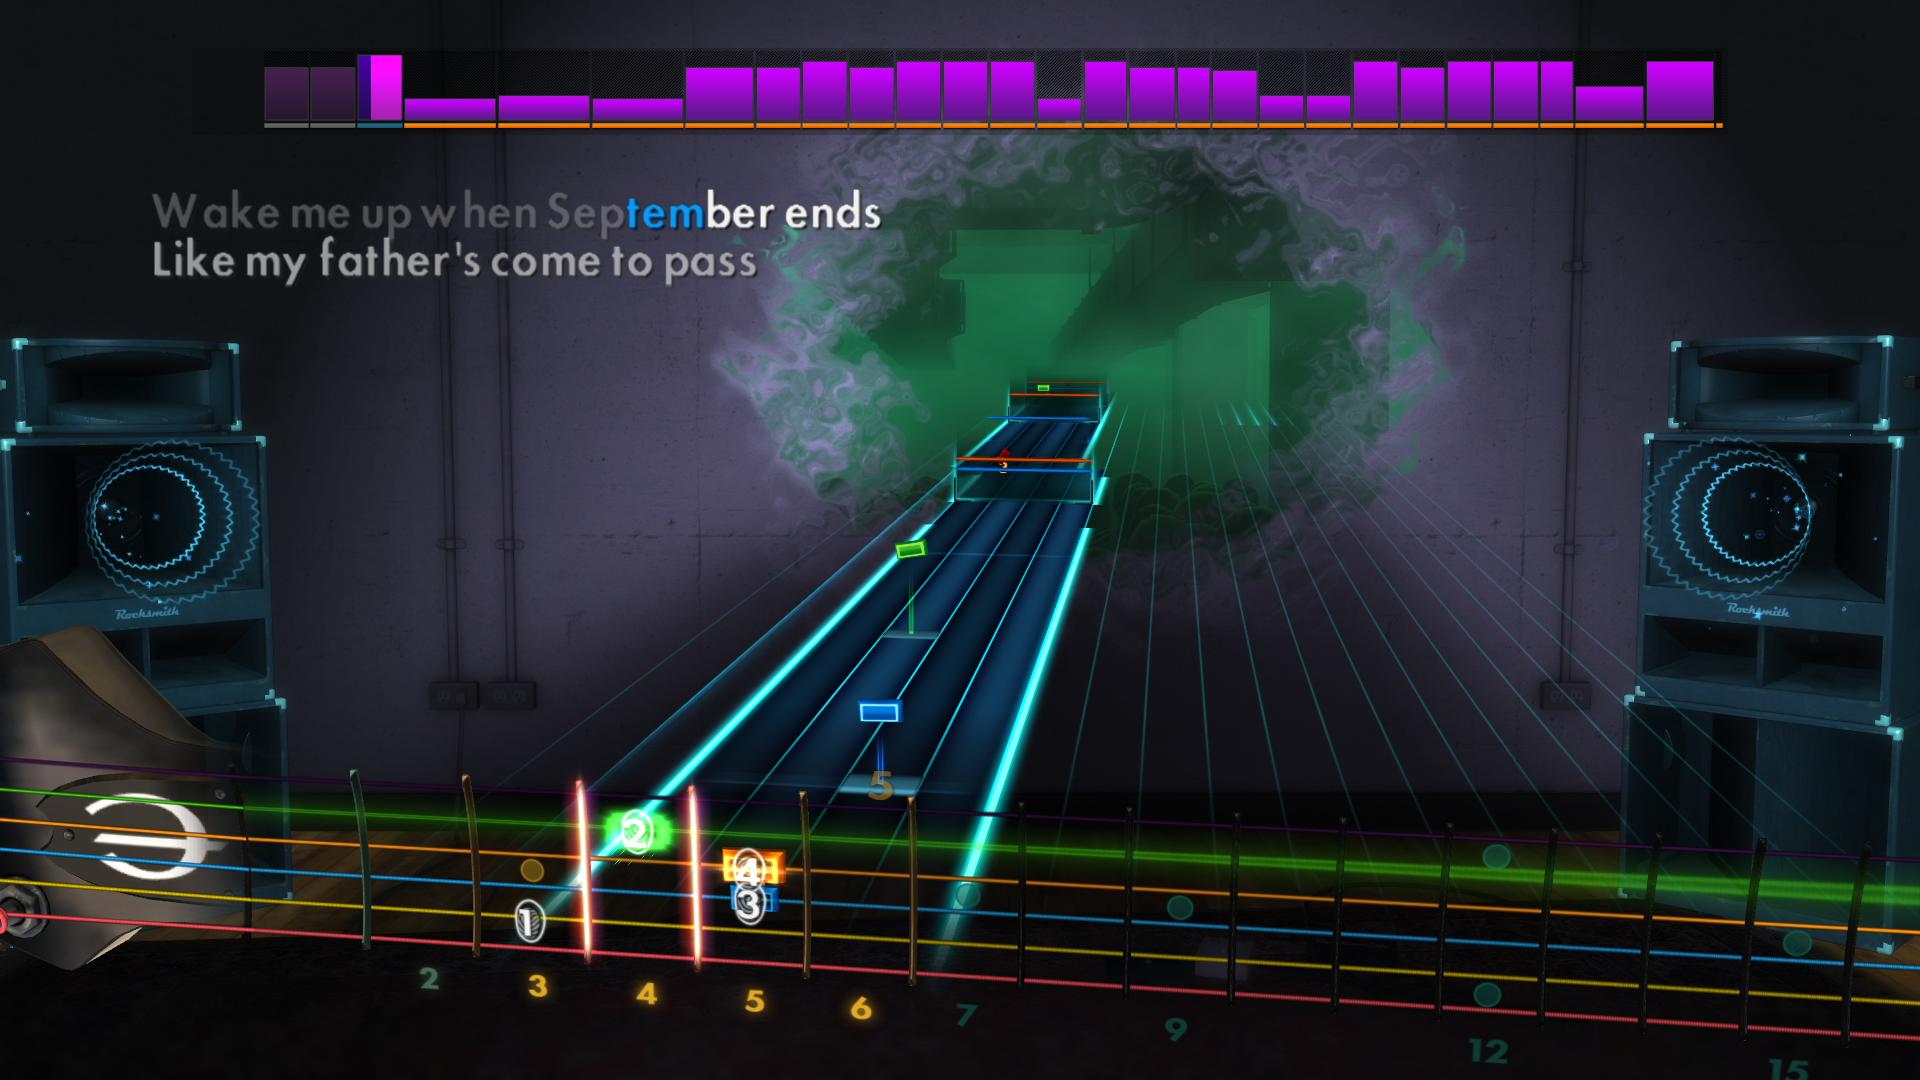 how to play wake me up when september ends guitar